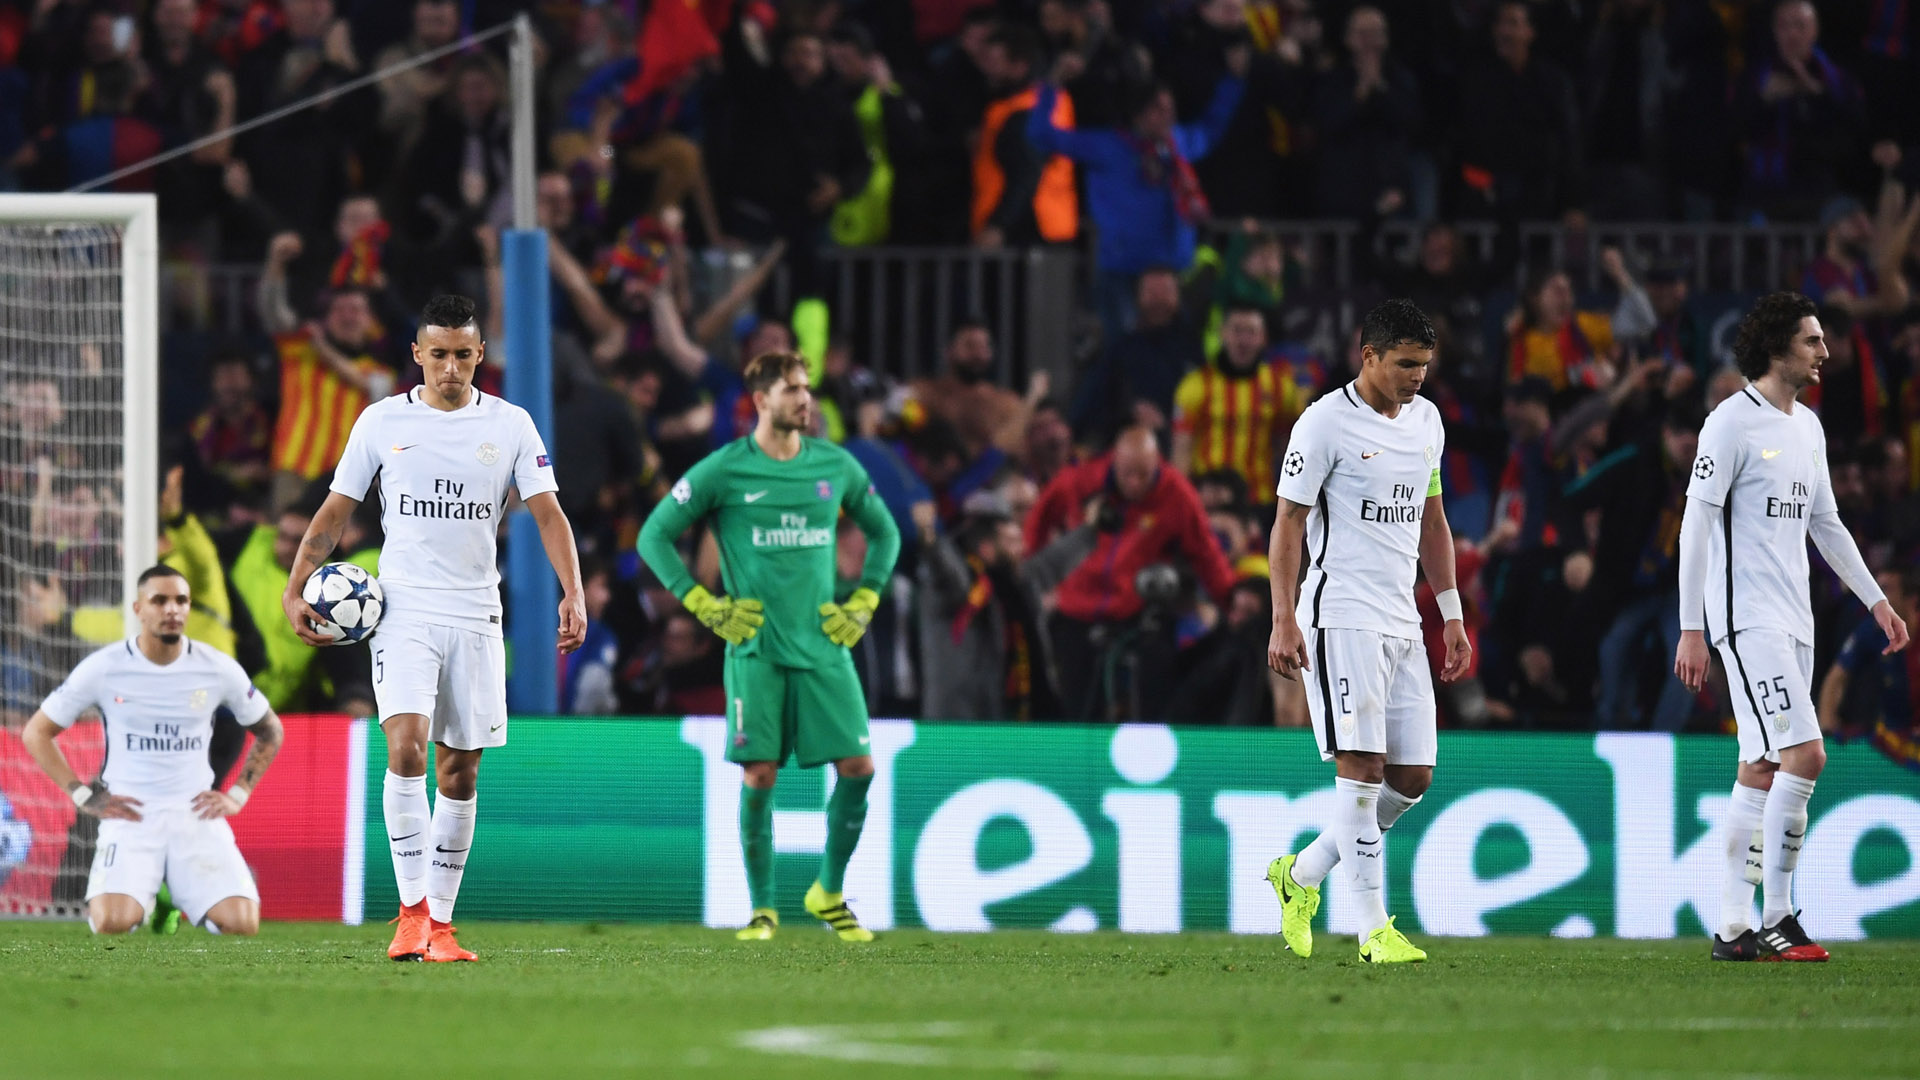 Champions League odds: Barcelona, Real Madrid favourites - can Man City shock Liverpool?